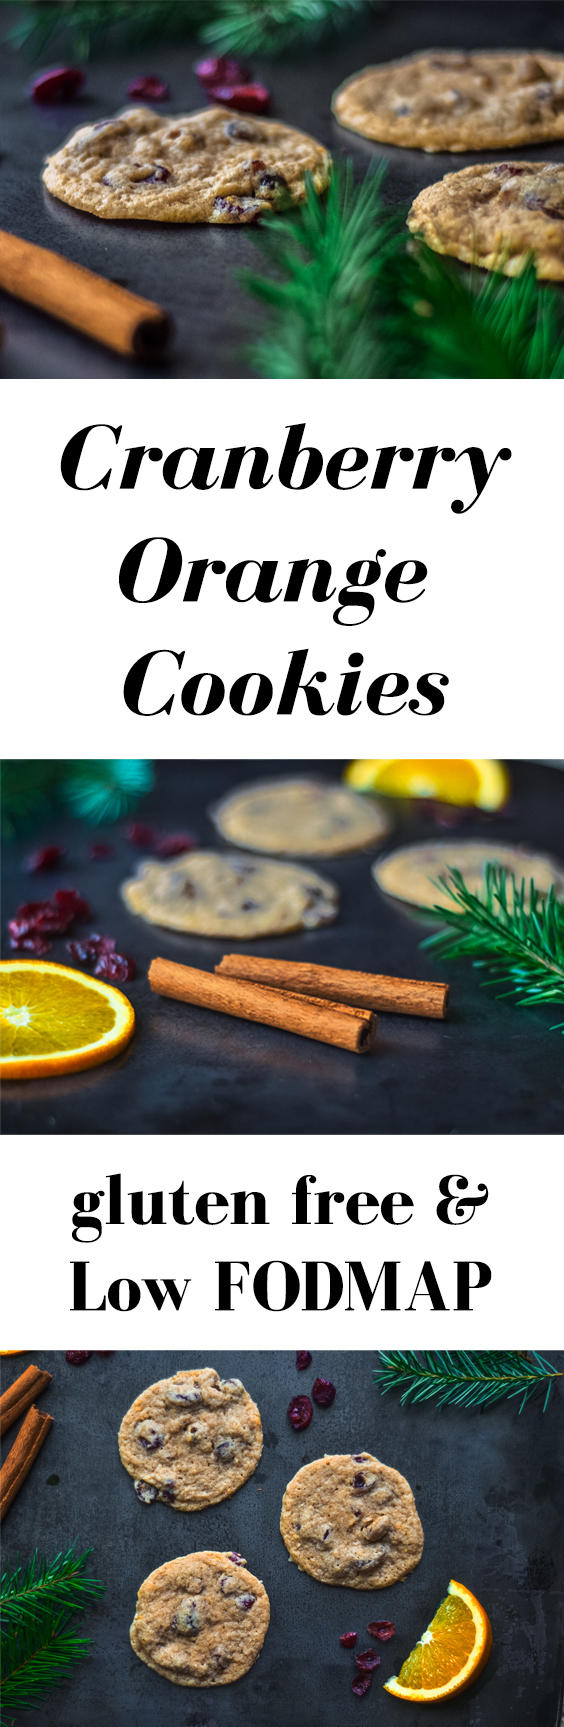 If you were to imagine what Christmas tastes like in the form of a cookie, then this recipe creates just that! Cranberries, orange and cinnamon work in sweet festive harmony. Perfect for holiday cookie exchanges and Valentine's Day.  // Gluten free cookies, healthy cookies, low fodmap cookies